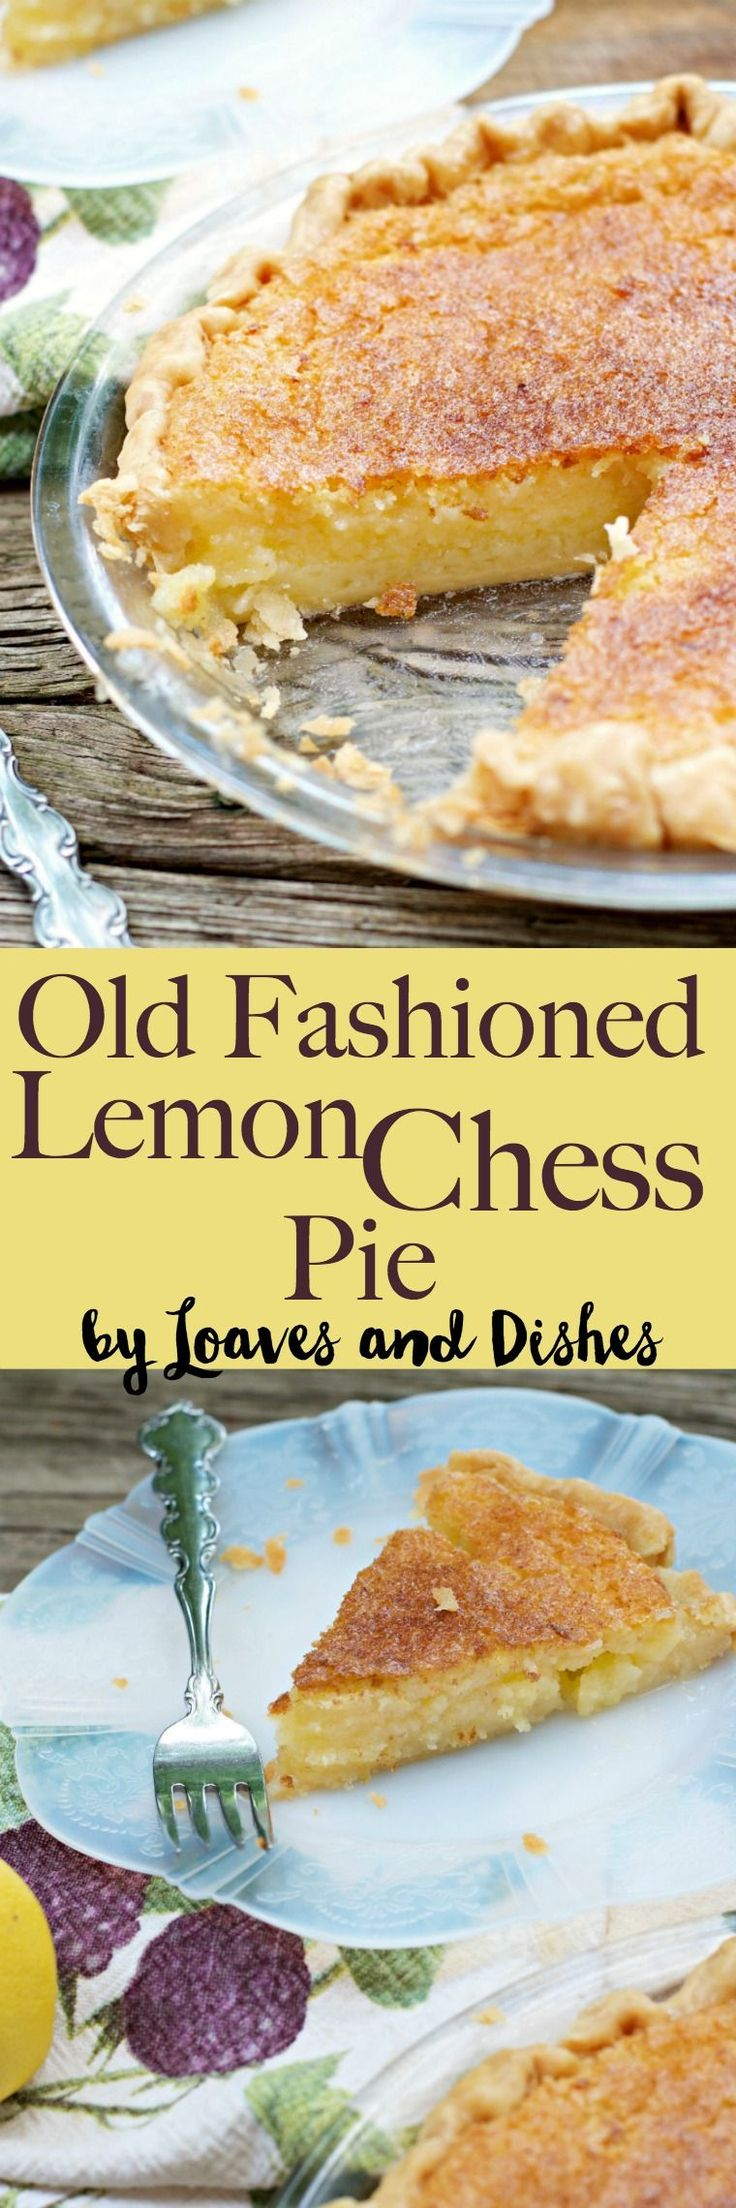 Old Fashioned Lemon Chess Pie - an old easy southern recipe that is like something your best friend or grandma would make. So simple. : loavesanddishes